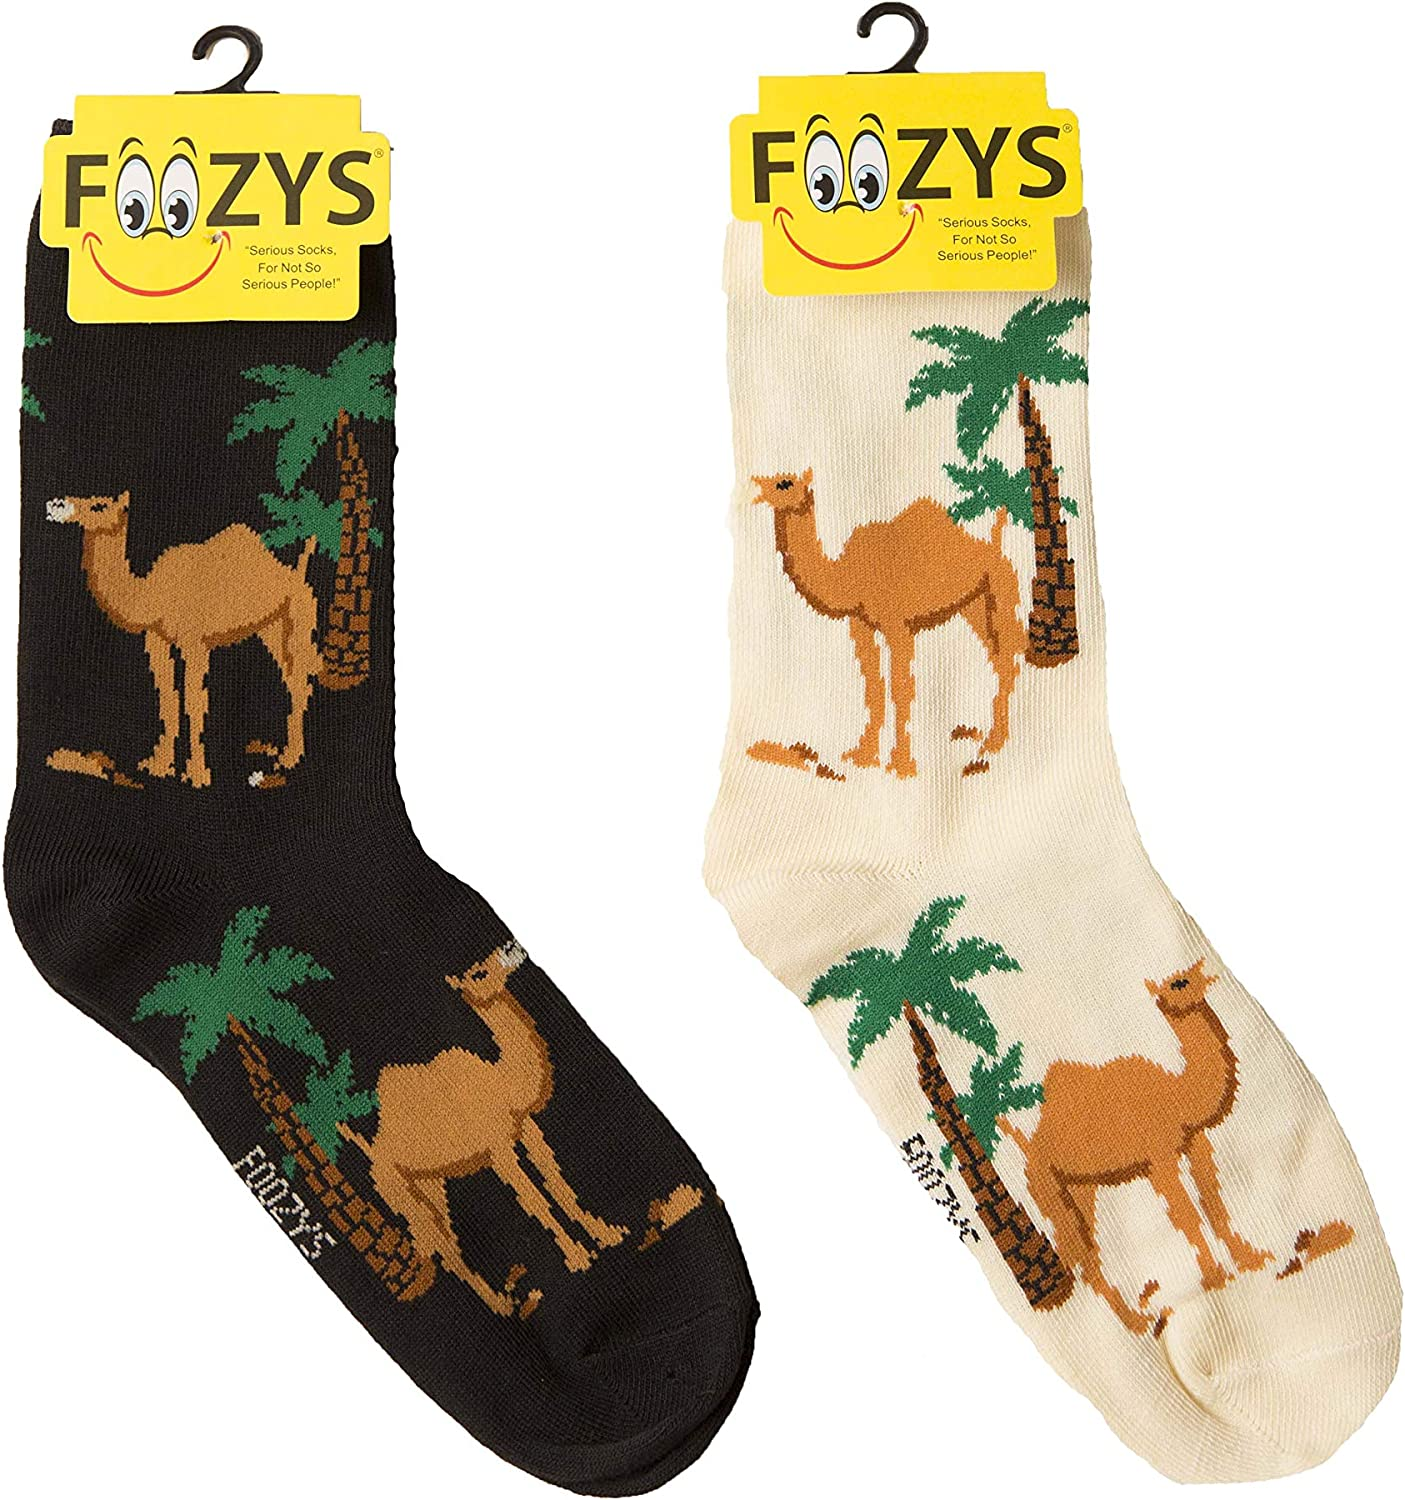 Foozys Some reservation Women's Crew Socks Cute Over item handling Zoo Animal Themed Novelty